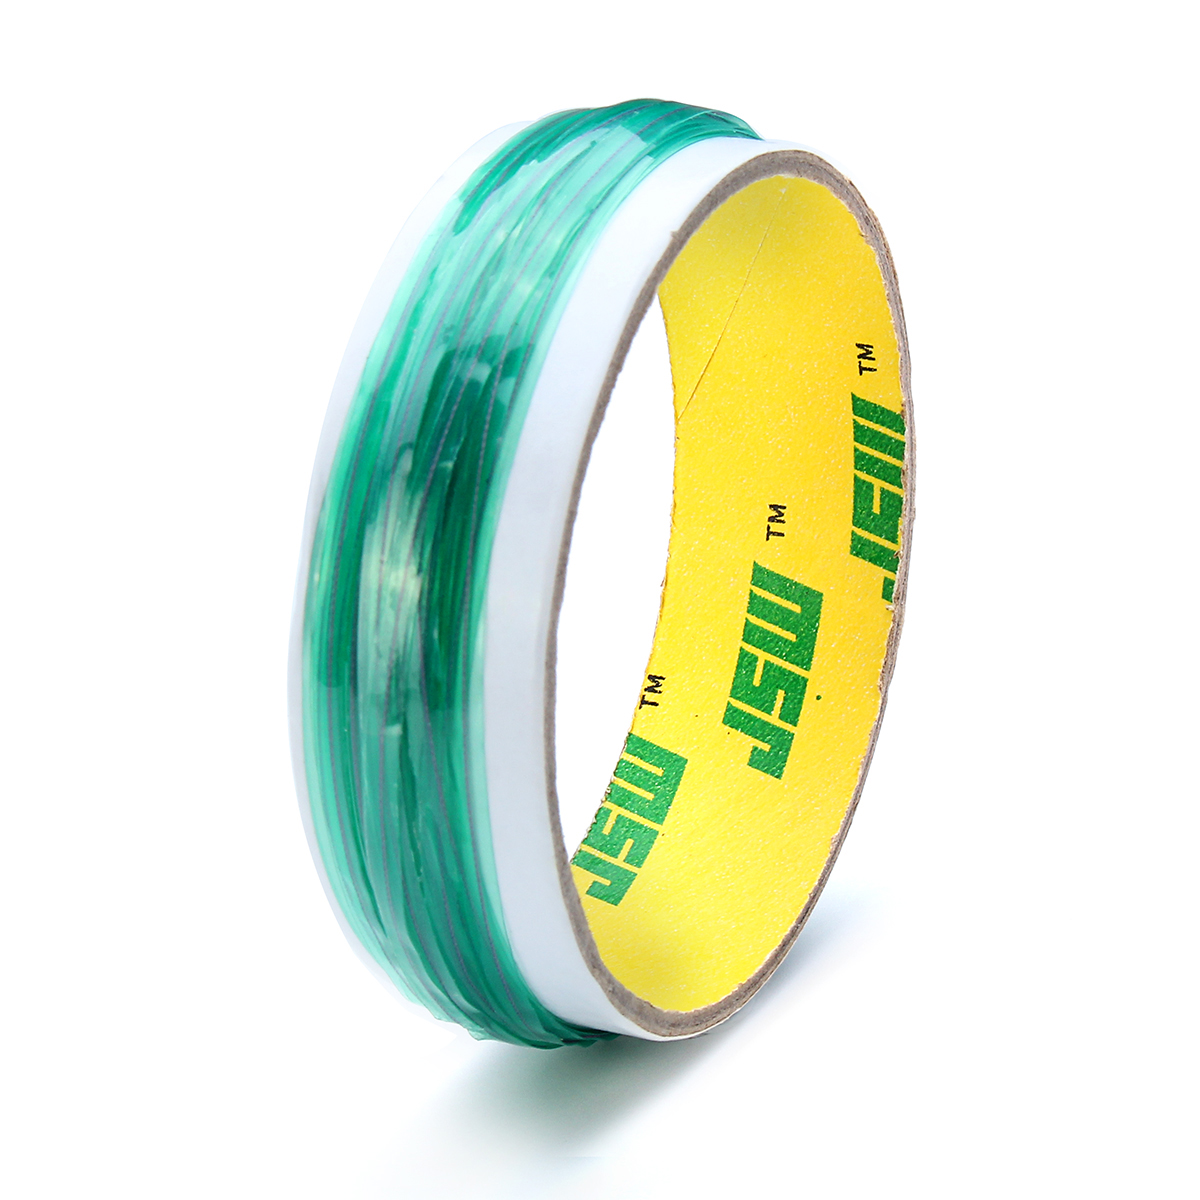 10m Knifeless Line Tape Squeegee Graphic Vinyl Cutting Wrap Tool